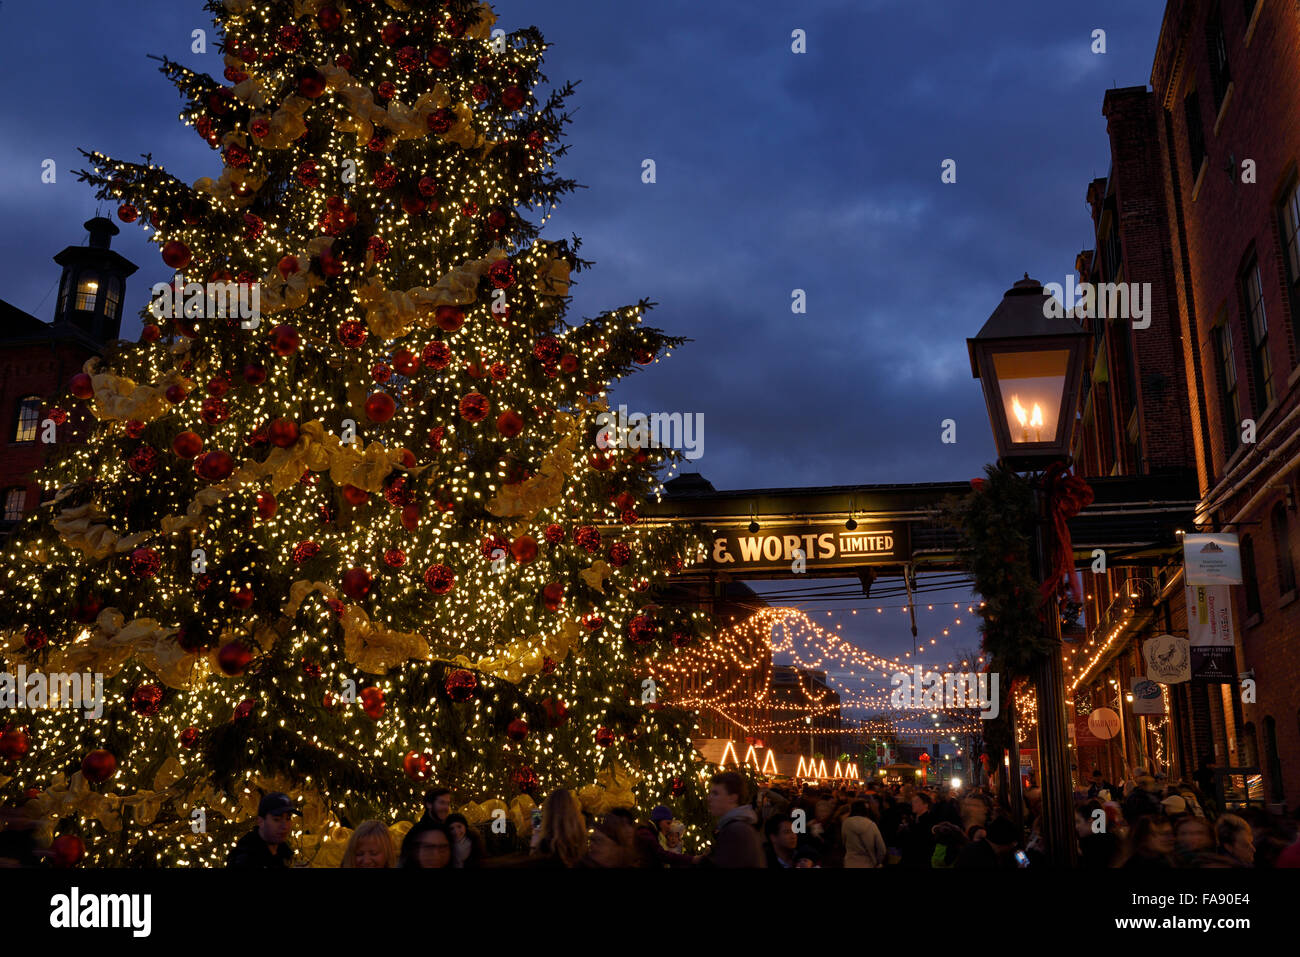 Crowds at historic Distillery District Toronto Christmas Market with decorated outdoor tree at dusk Stock Photo